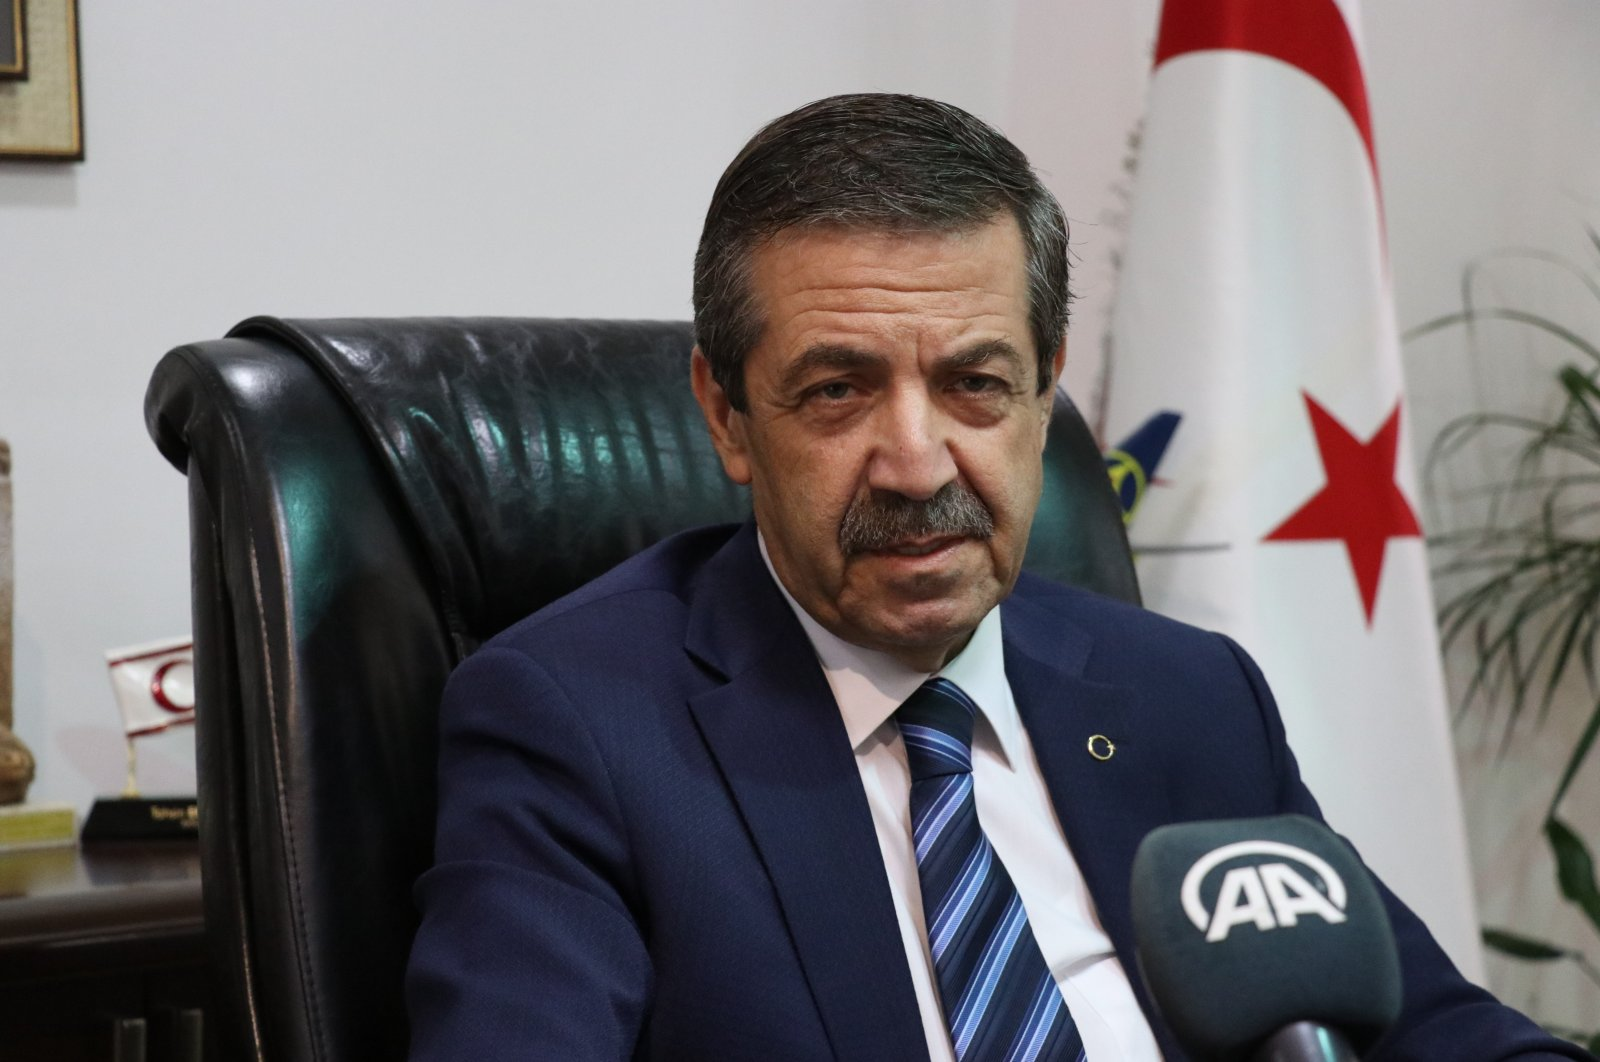 Turkish Republic of Northern Cyprus (TRNC) Foreign Minister Tahsin Ertuğruloğlu speaks during an interview with Anadolu Agency (AA), Sept. 17, 2021 (AA Photo)